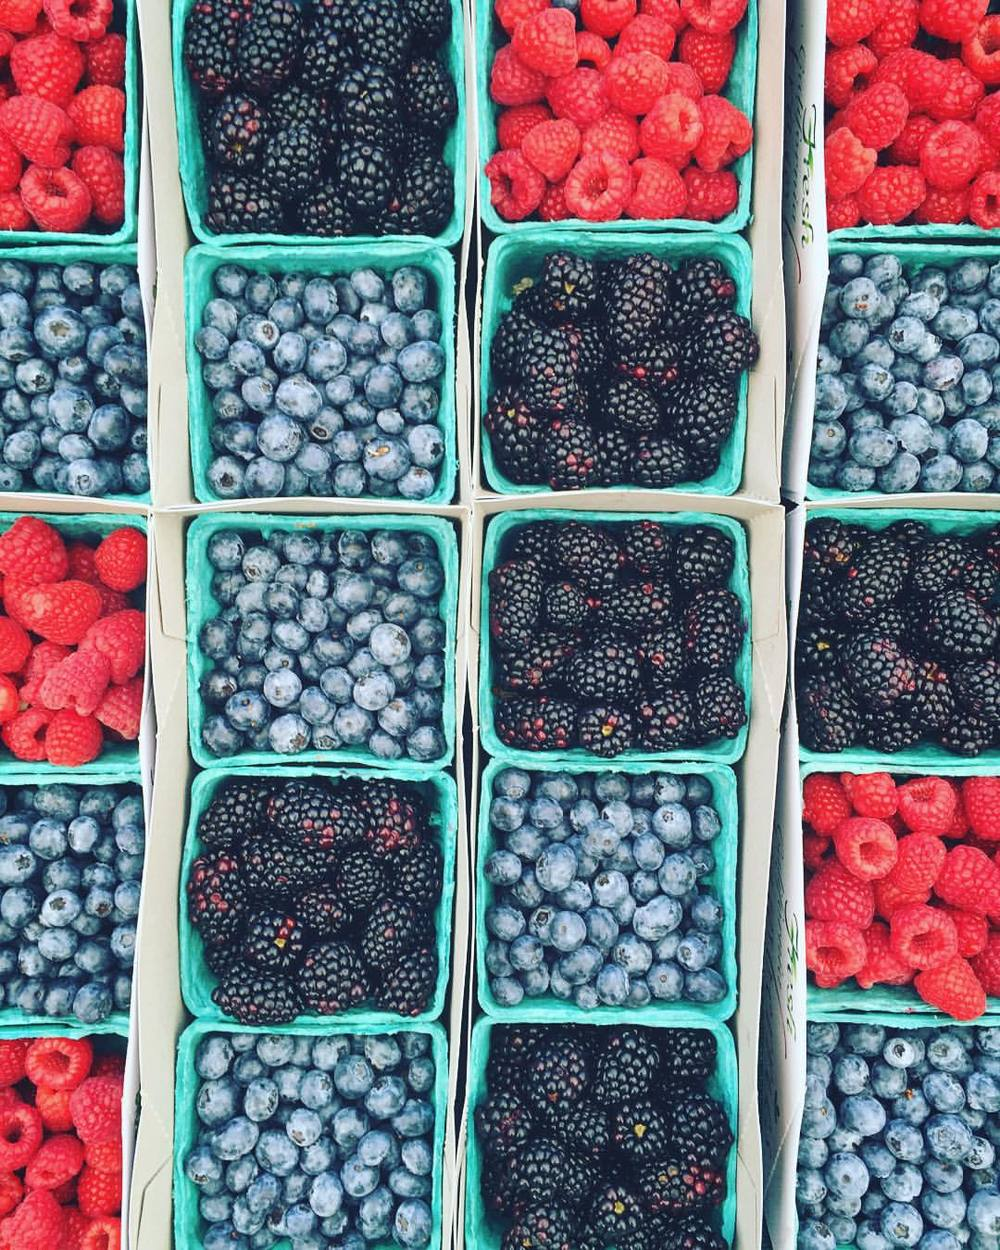 Wilshire Farmer's Market | Los Angeles, California